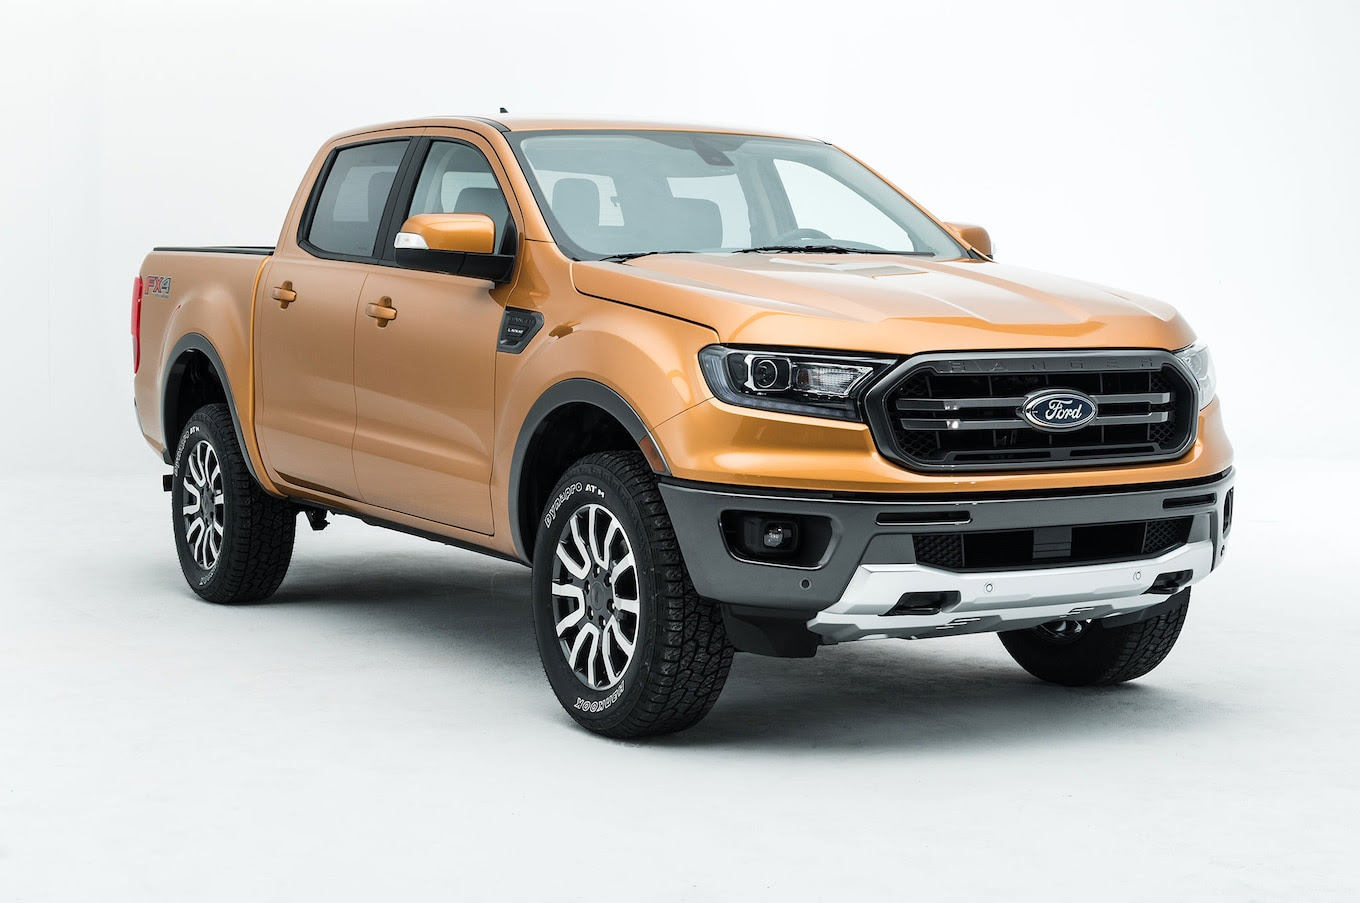 Ford Raptor For Sale Michigan | 2017, 2018, 2019 Ford ...